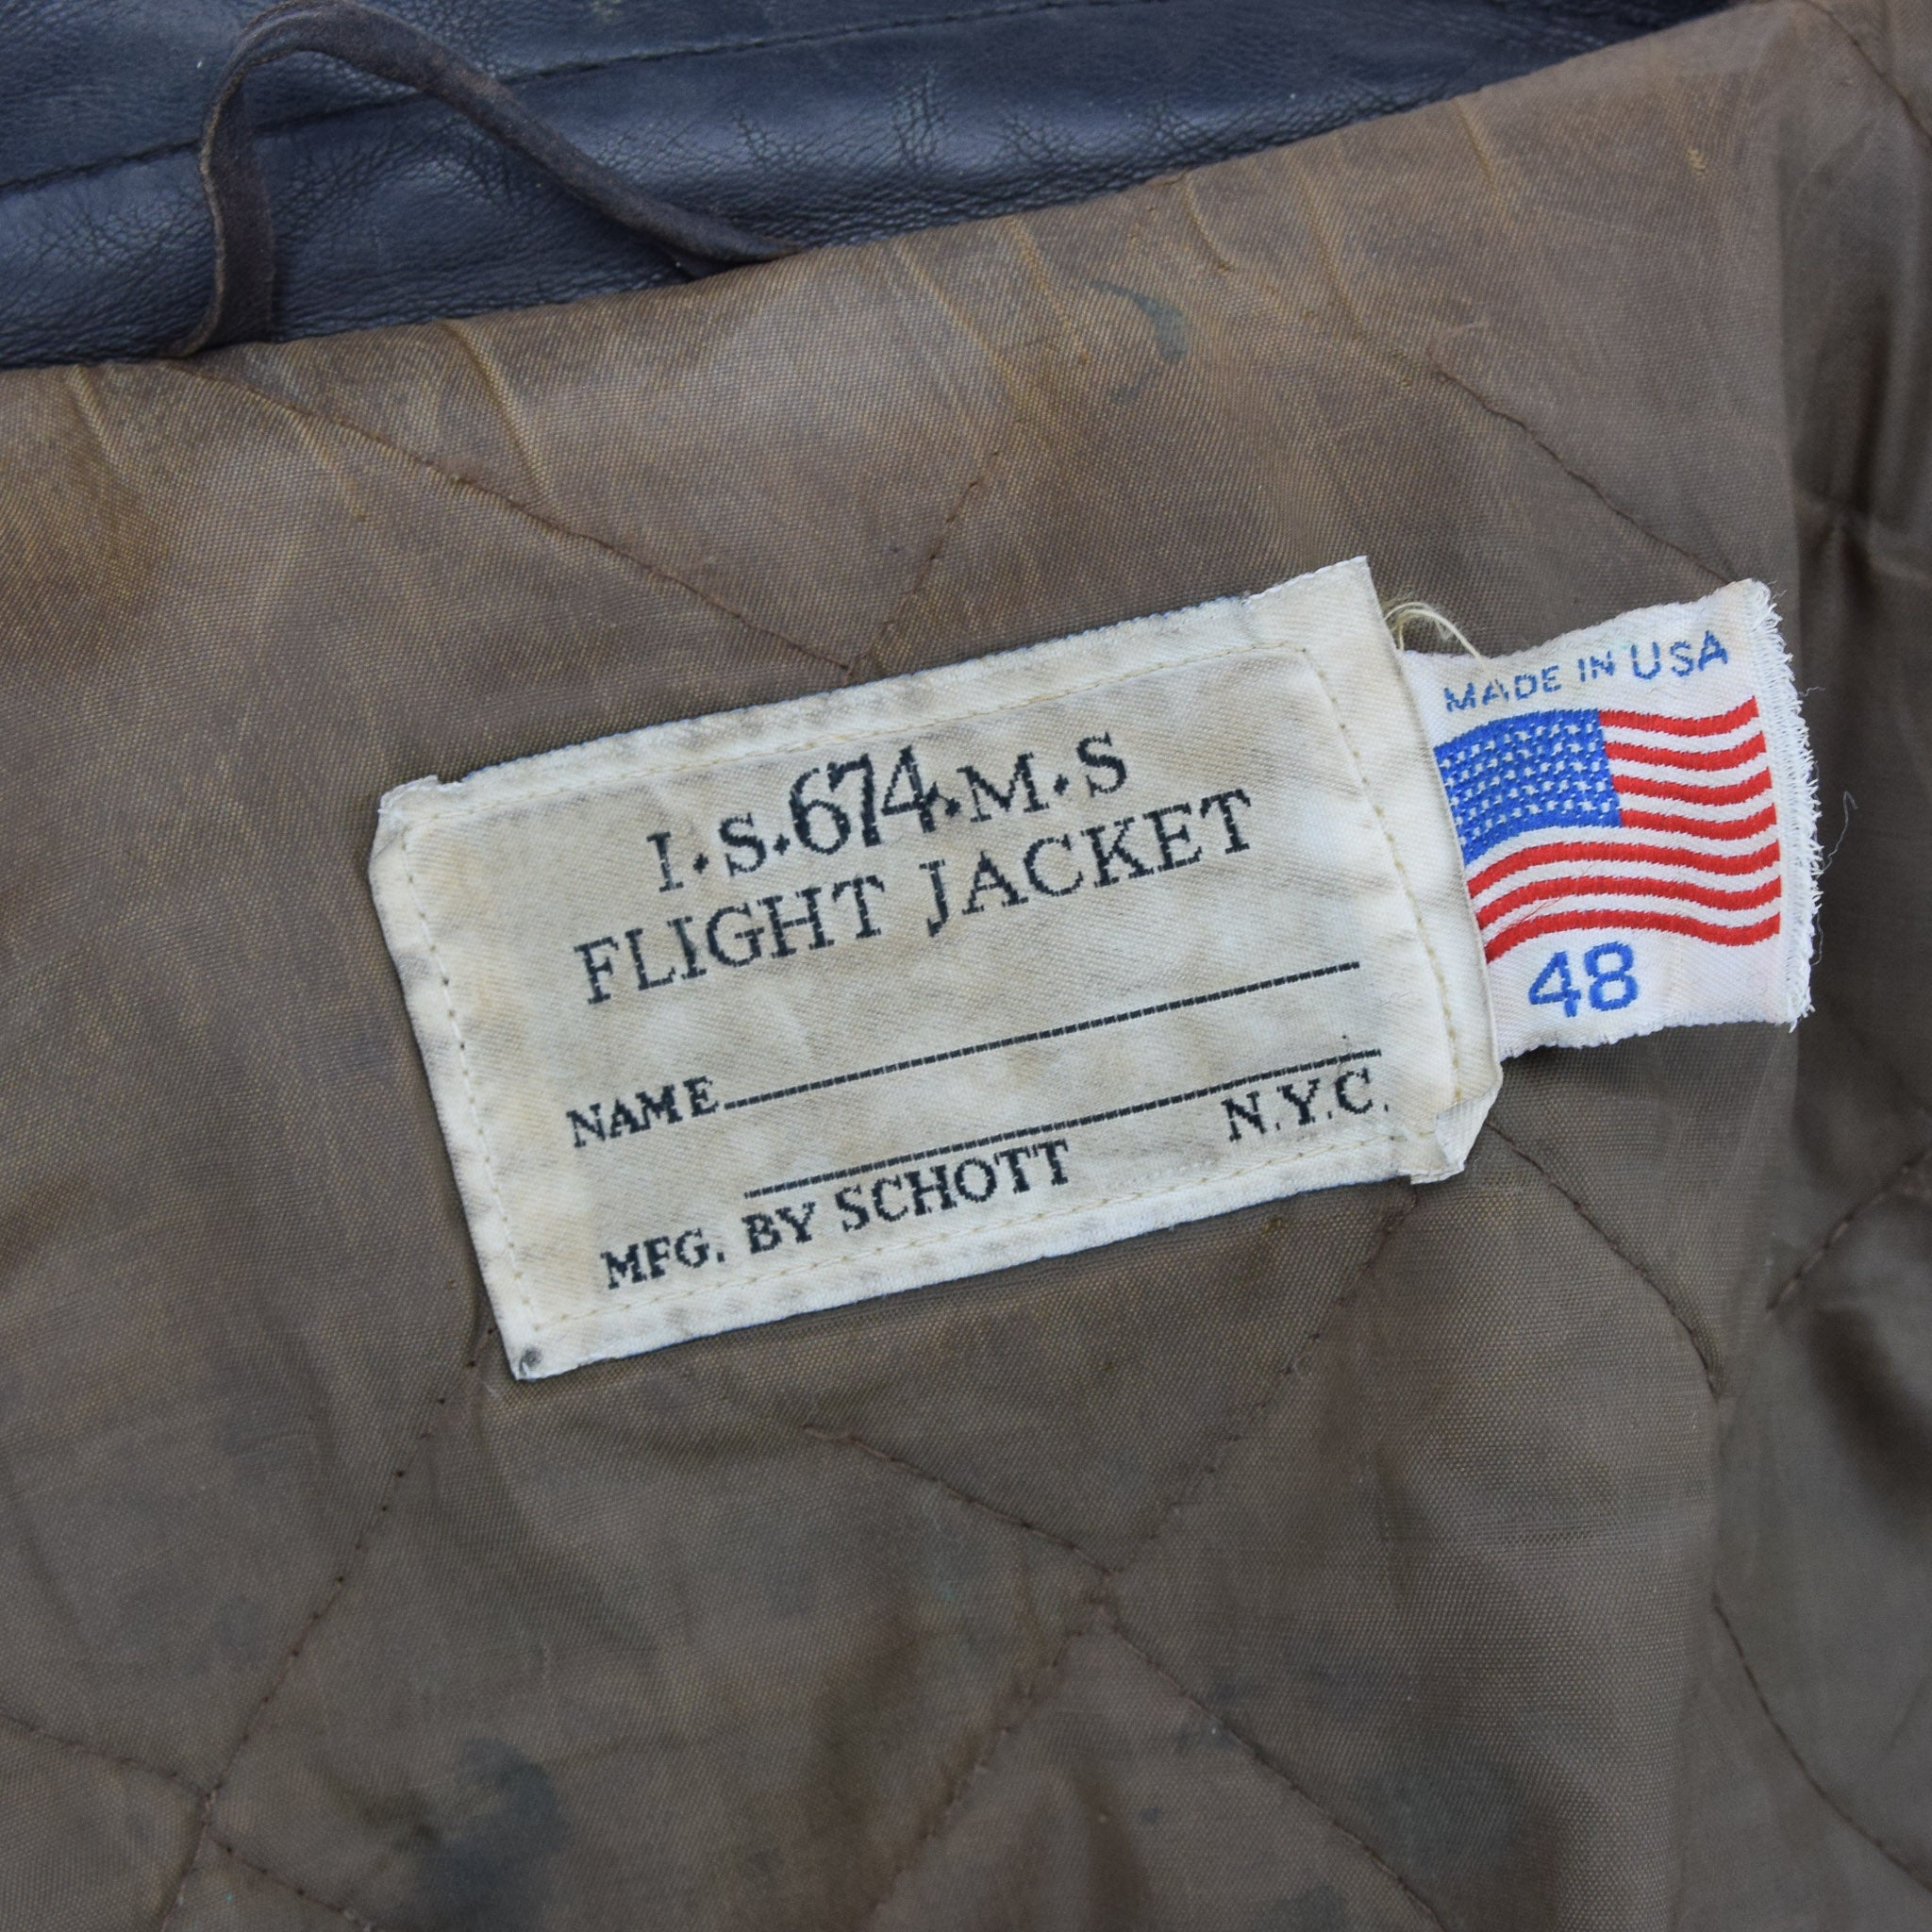 Vintage Schott IS-674-MS A-2 Brown Leather Flight Bomber Jacket Made in USA XL label